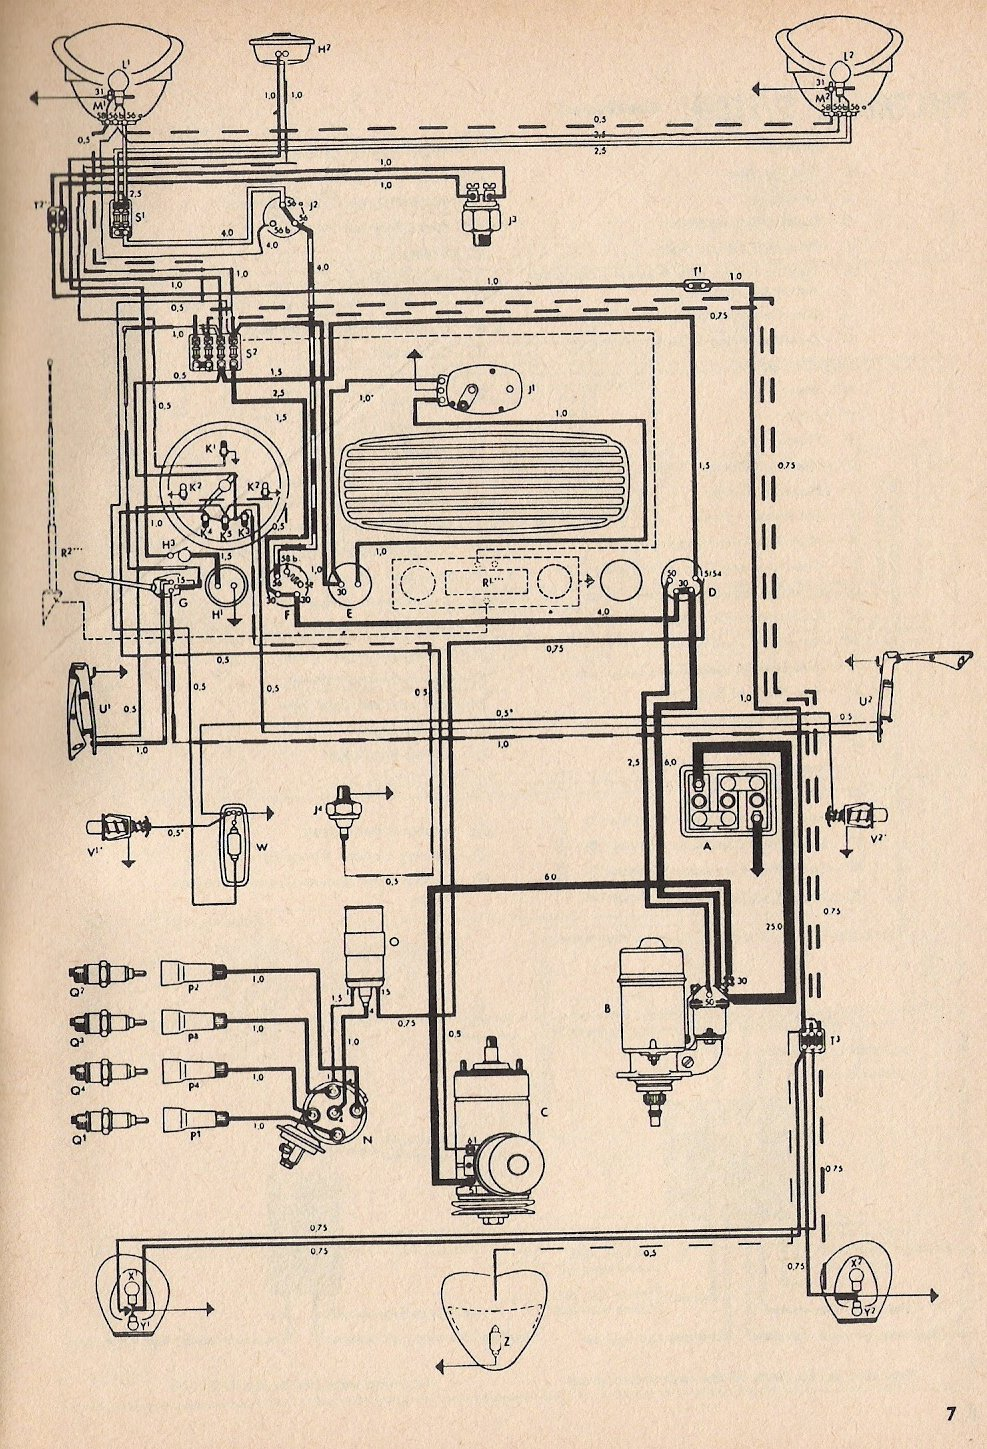 bug_54 1954 beetle wiring diagram thegoldenbug com vw beetle wiring diagram at couponss.co